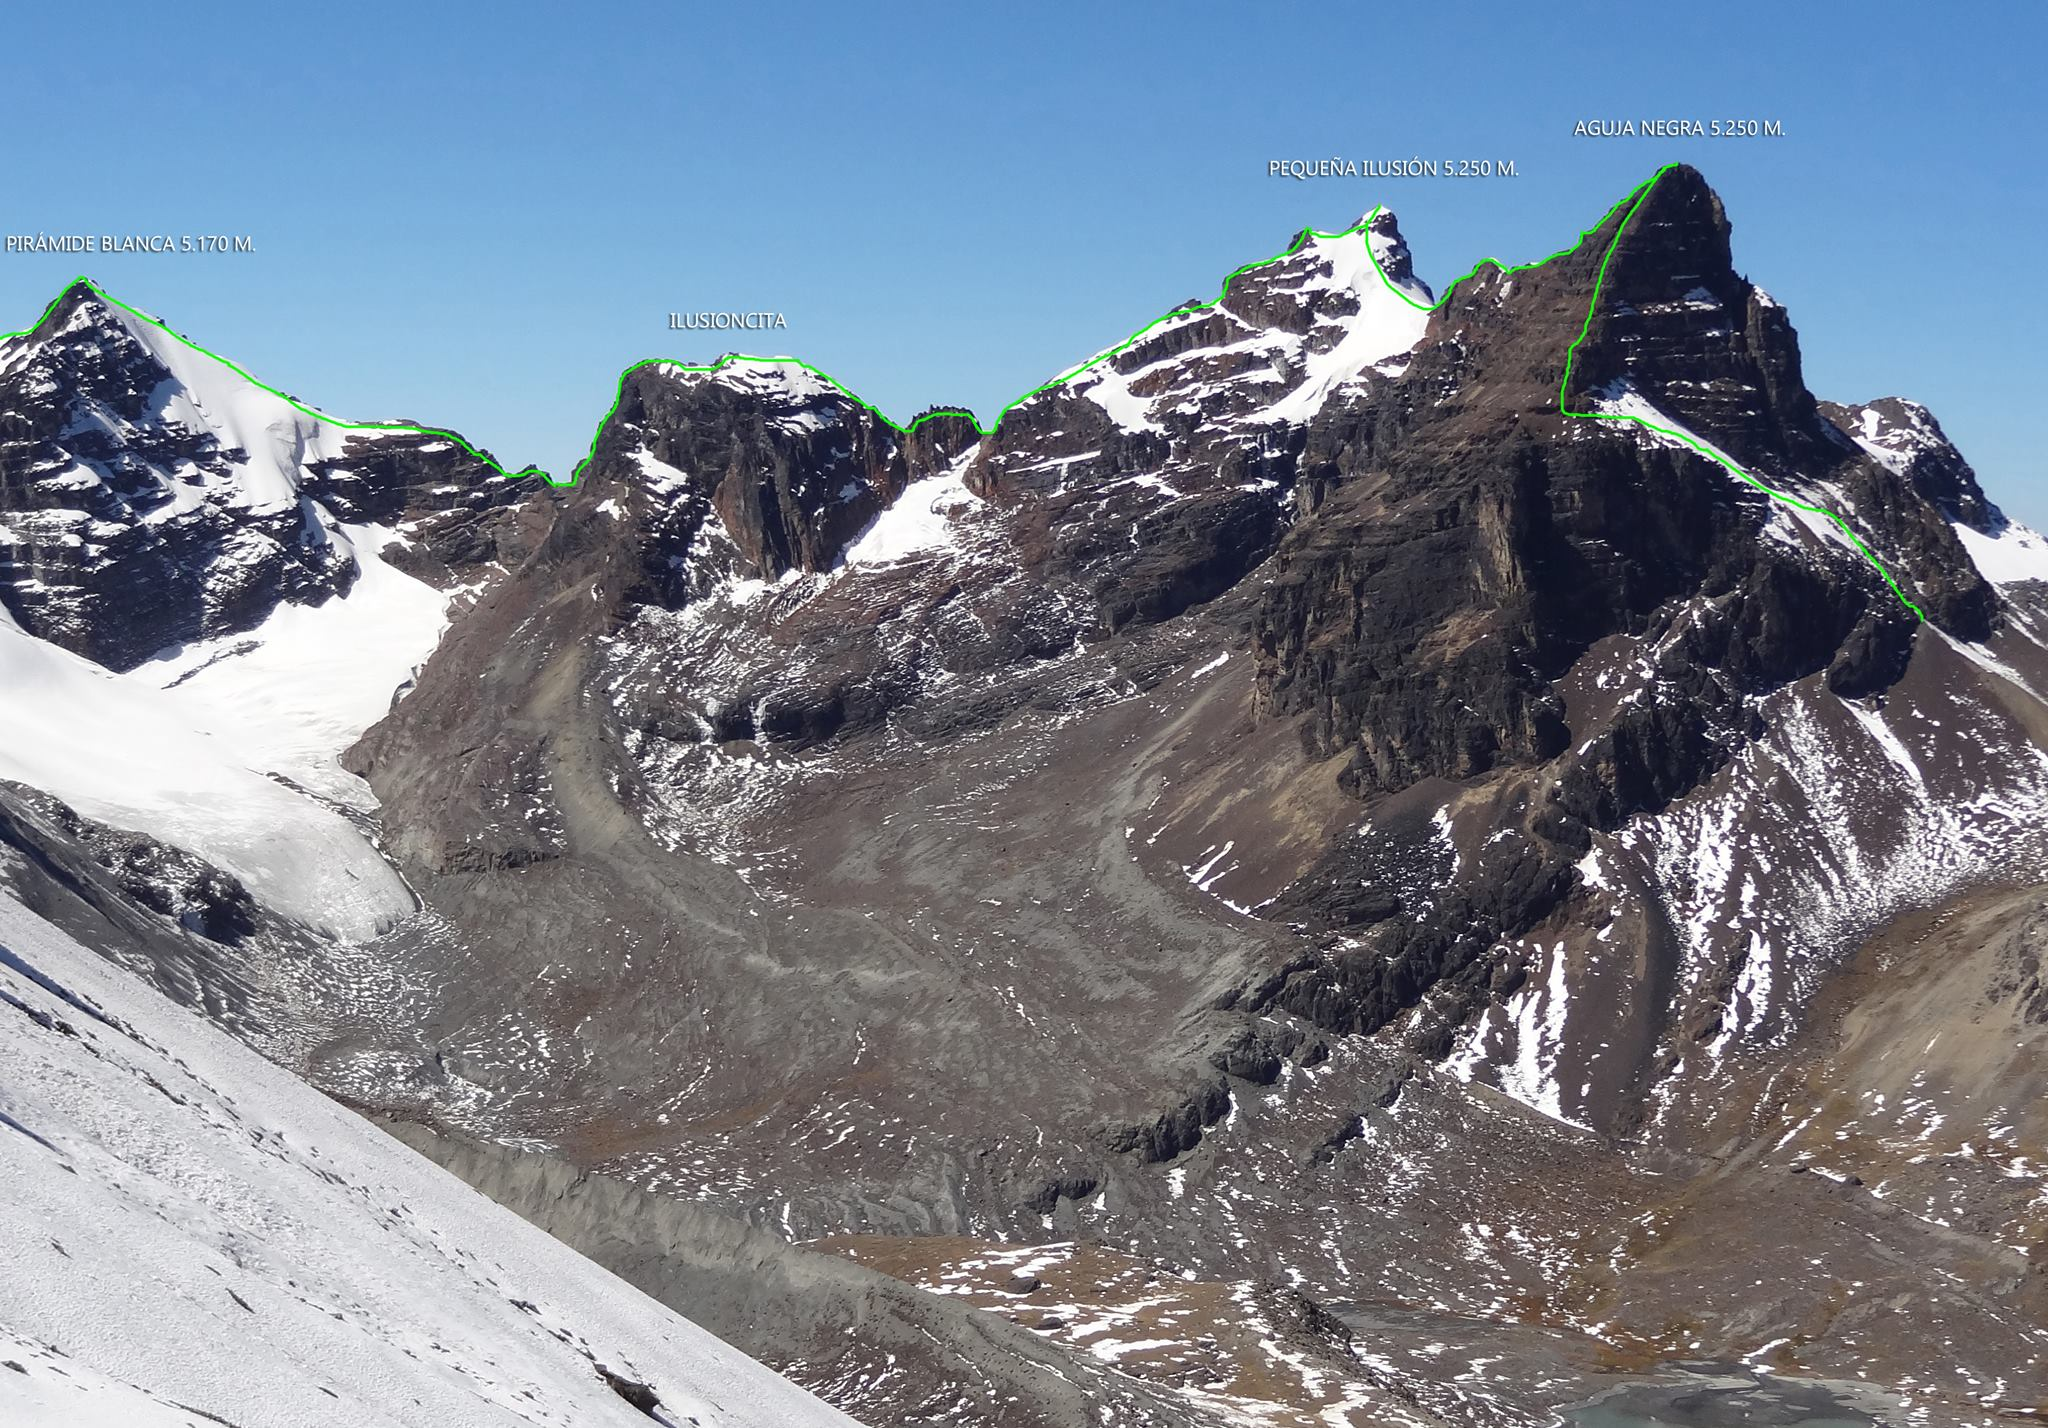 Start of the traverse, from Aguja Negra to Pirámide Blanca.